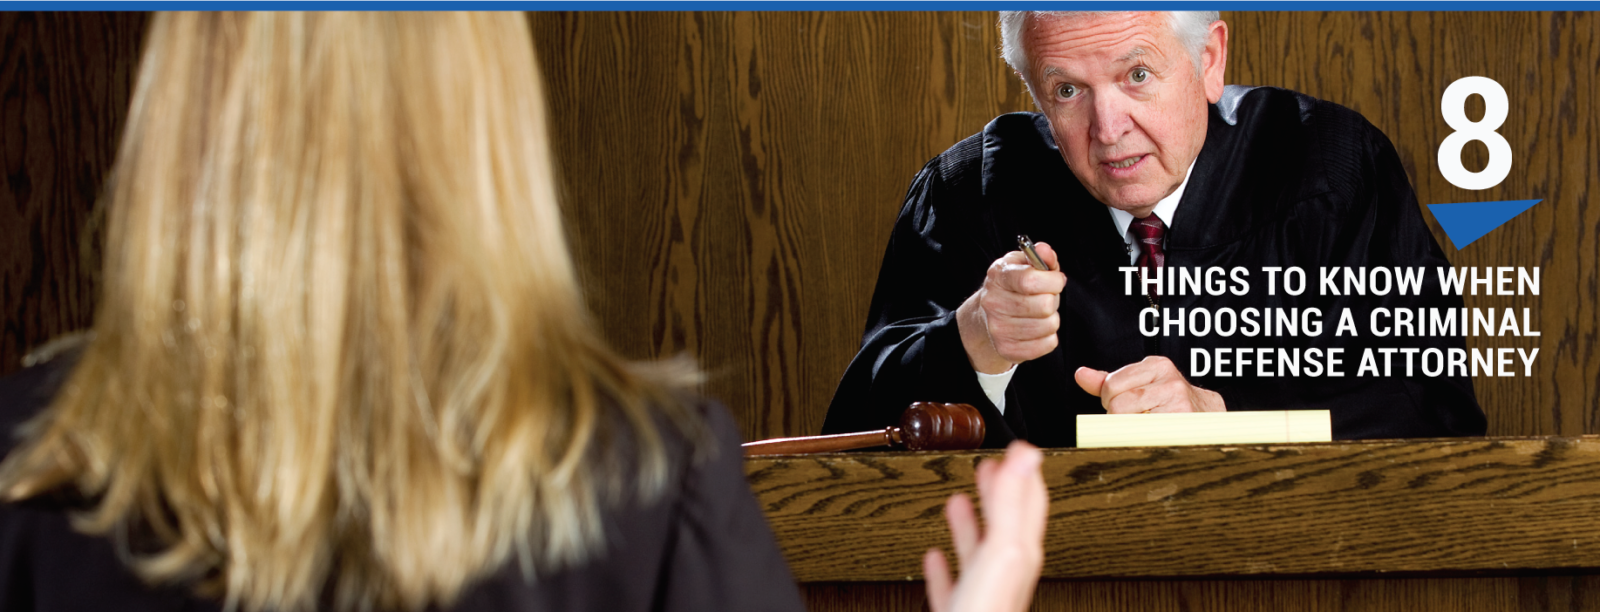 Things to Know When Choosing a Criminal Defense Attorney